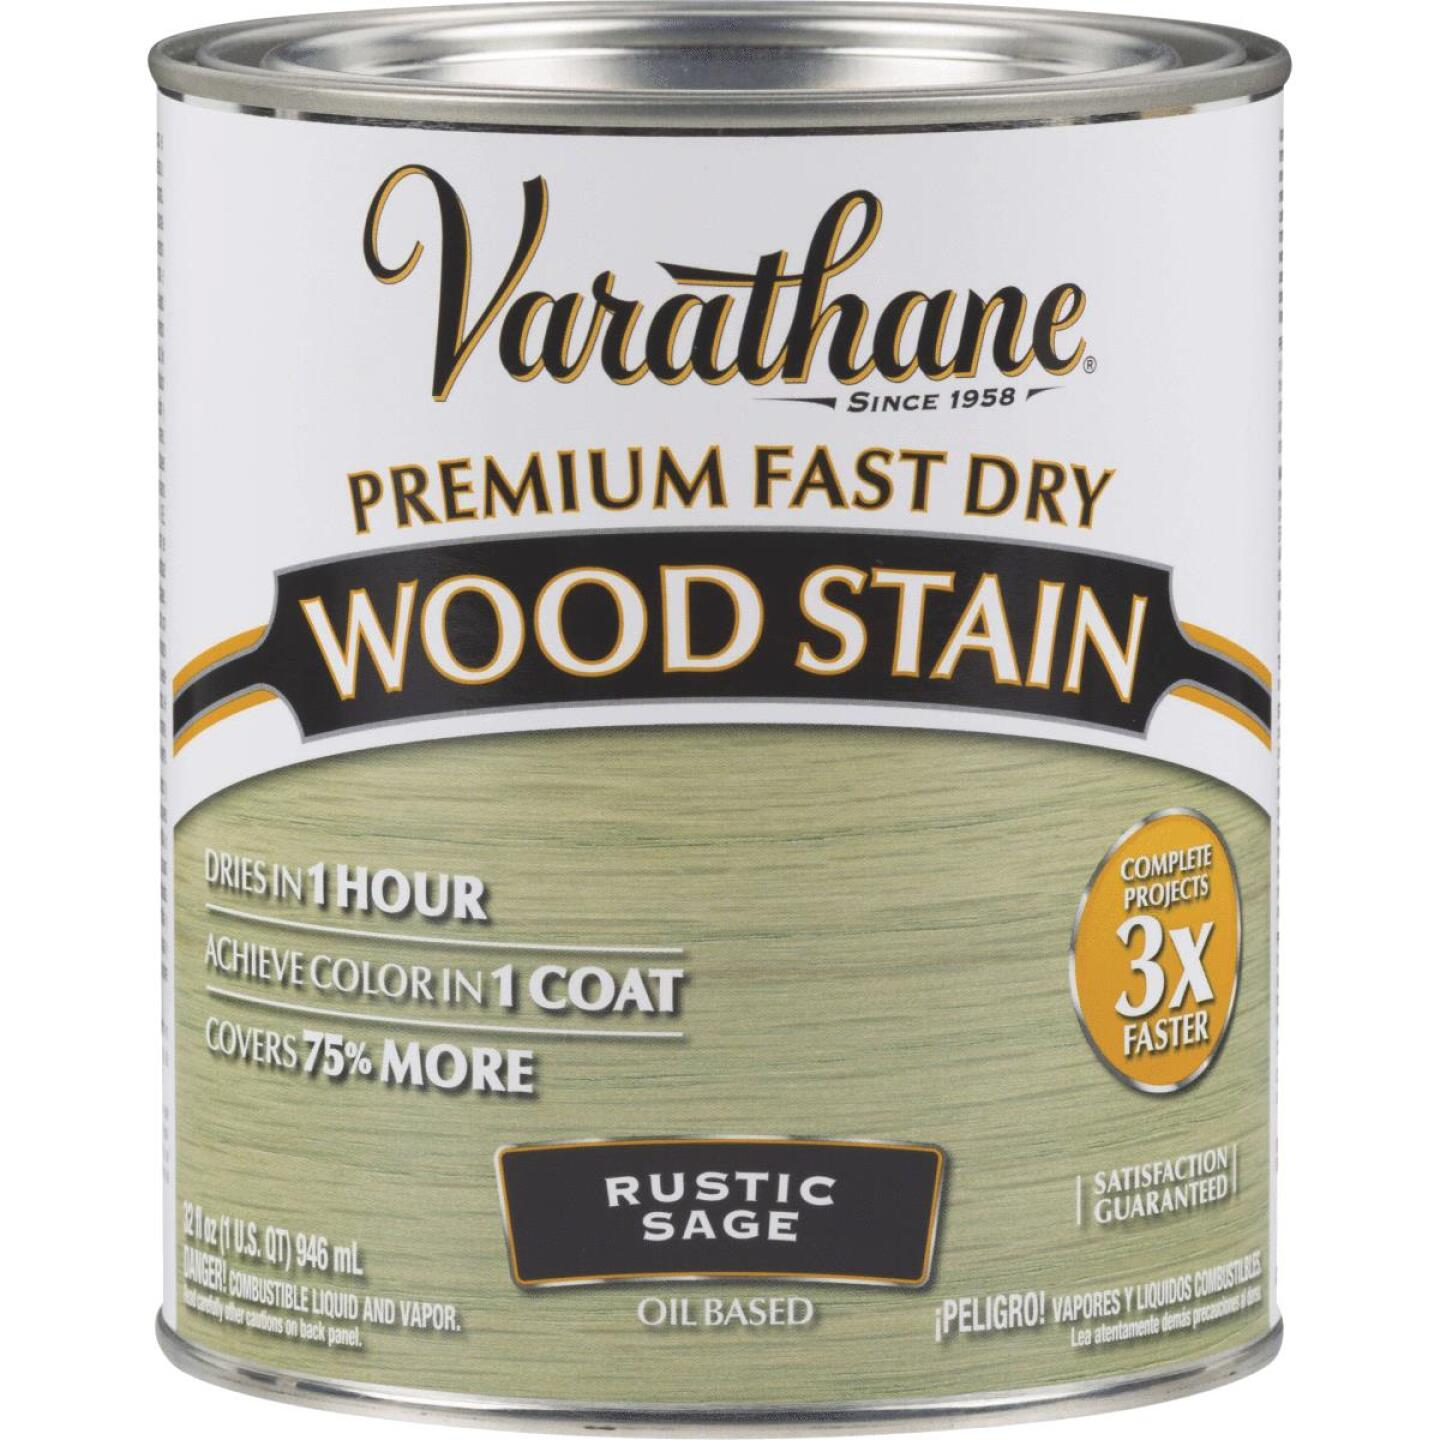 Varathane Fast Dry Rustic Sage Urethane Modified Alkyd Interior Wood Stain, 1 Qt. Image 1